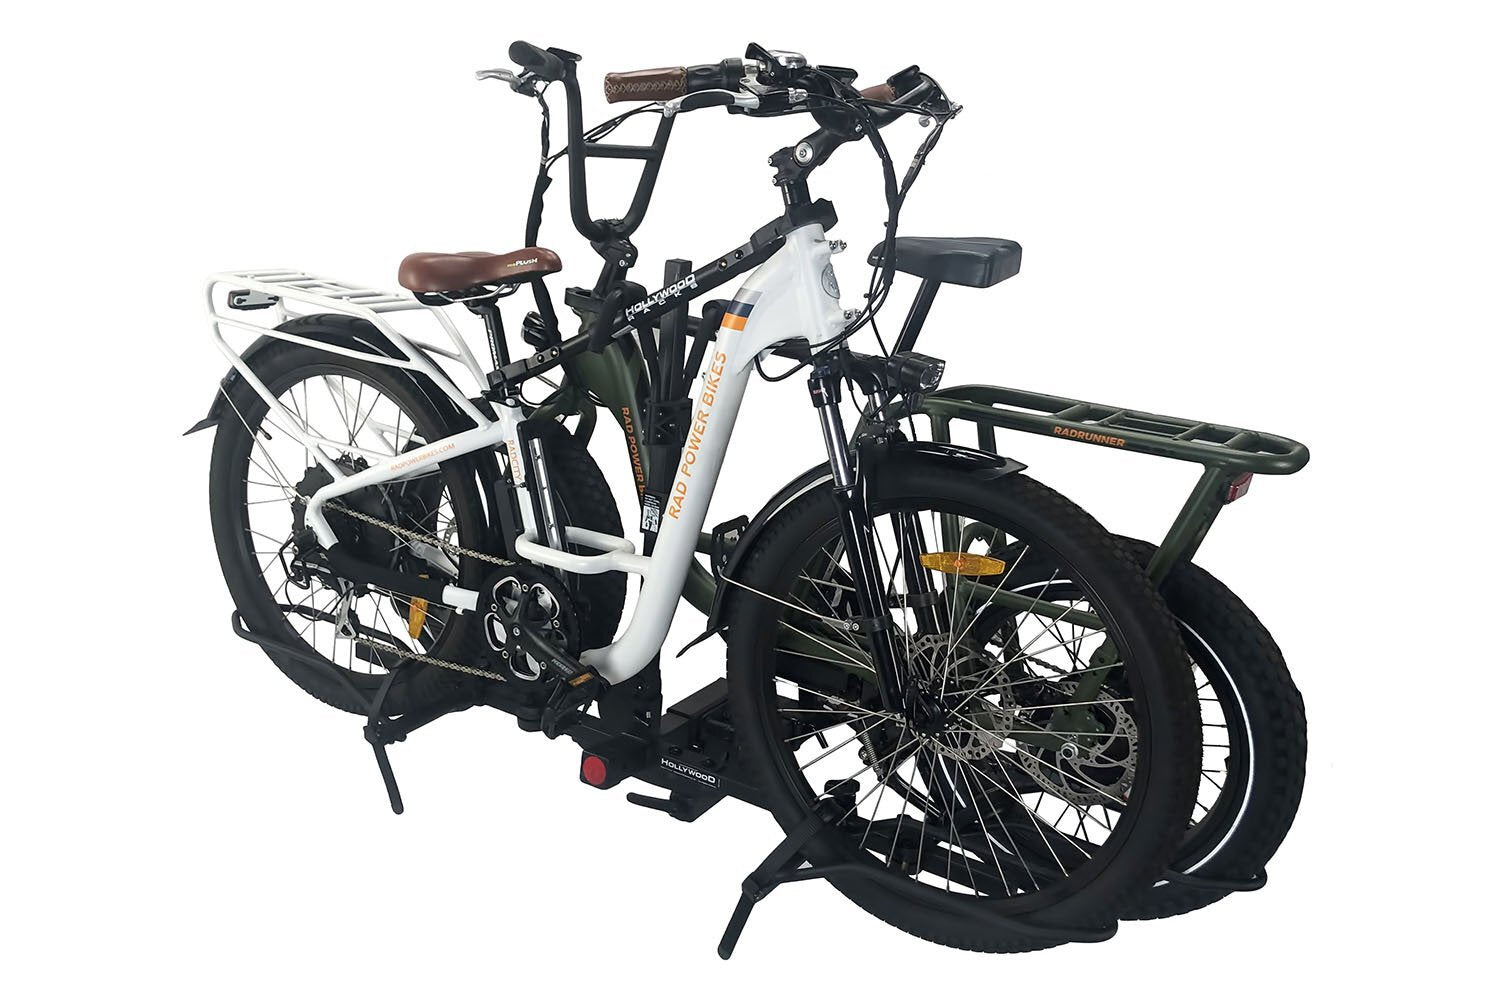 A RadRunner and RadMini attached to a Hollywood ebike rack.